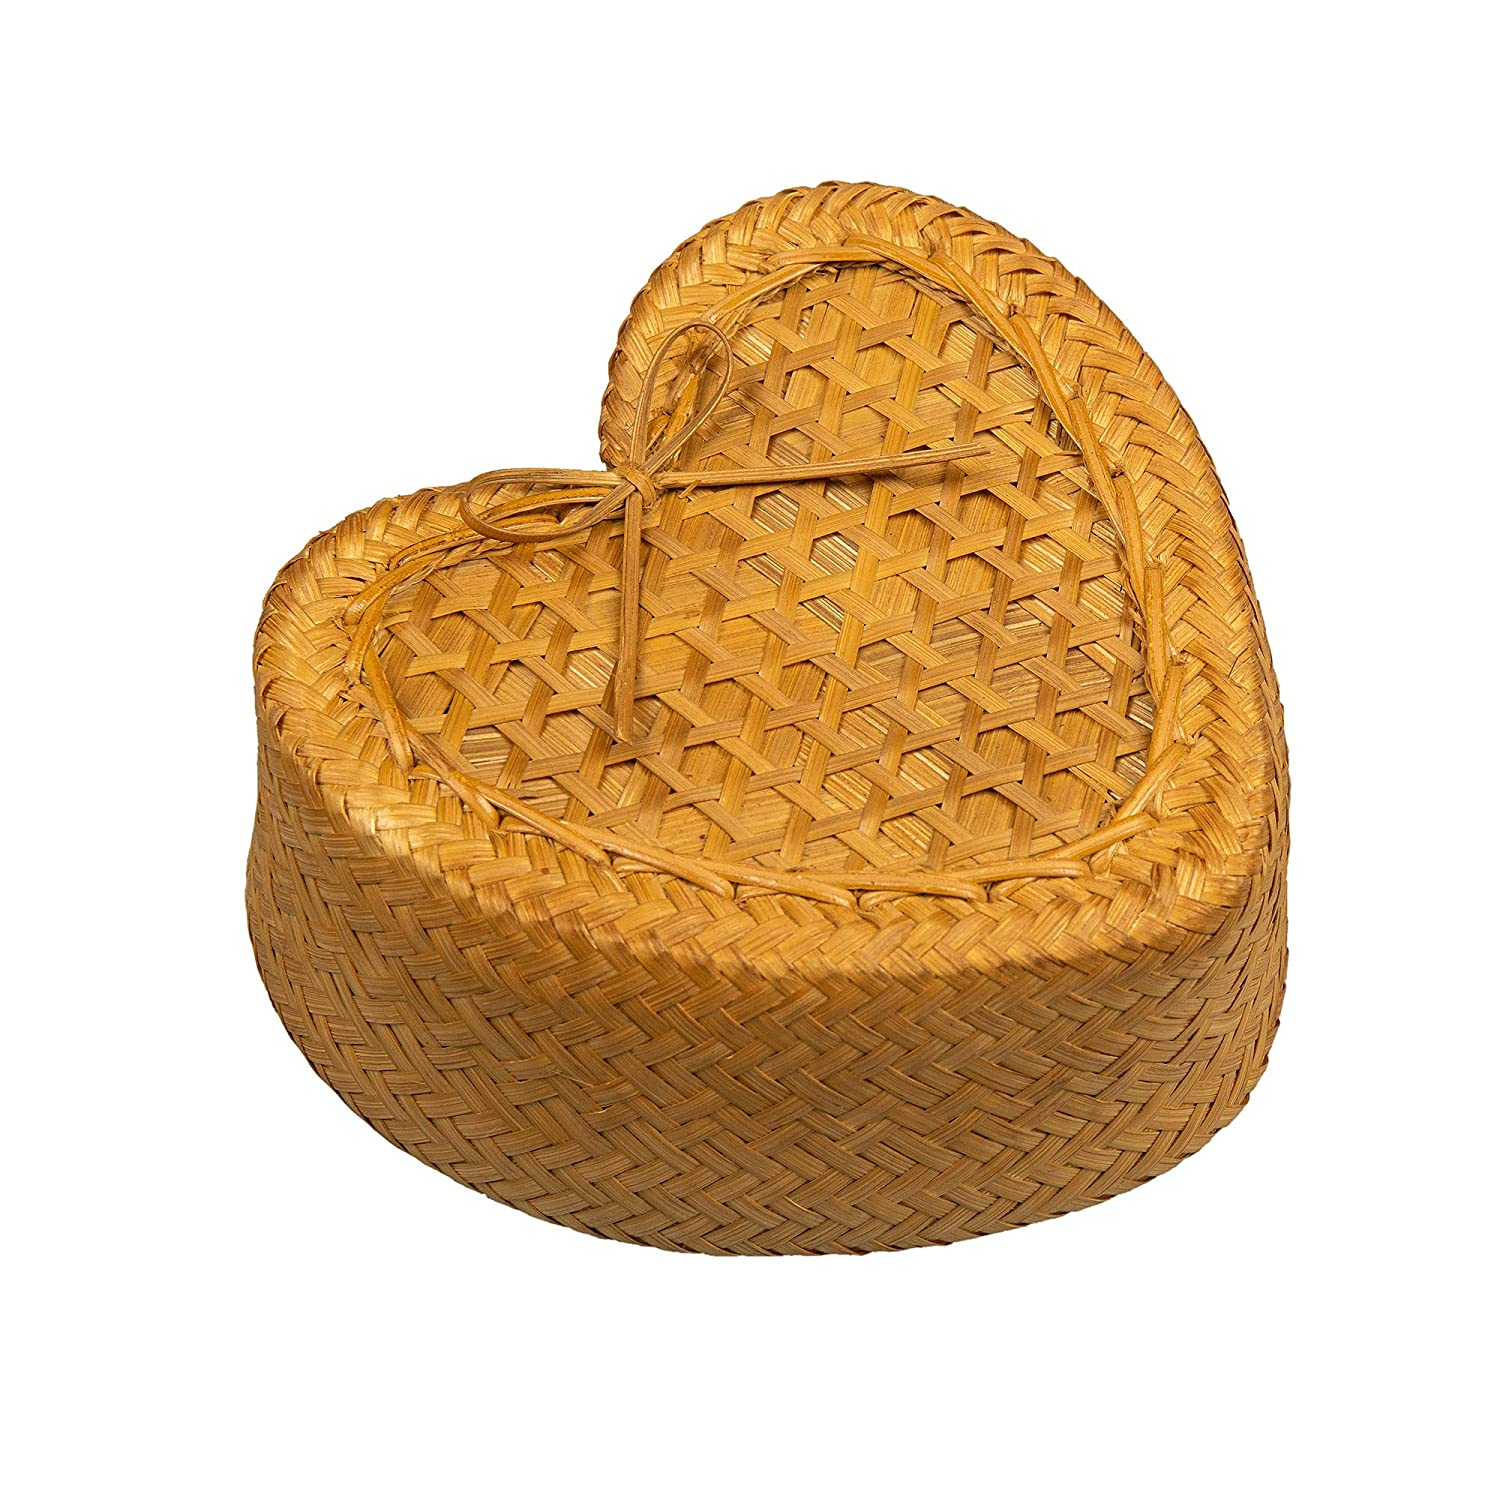 Thai Heart shape Kratip Natural weave Handmade bamboo sticky rice basket Serving Steamer Kitchen 4 inch for Home,restaurant or Cookware to Keep Sticky Rice Warm. WD